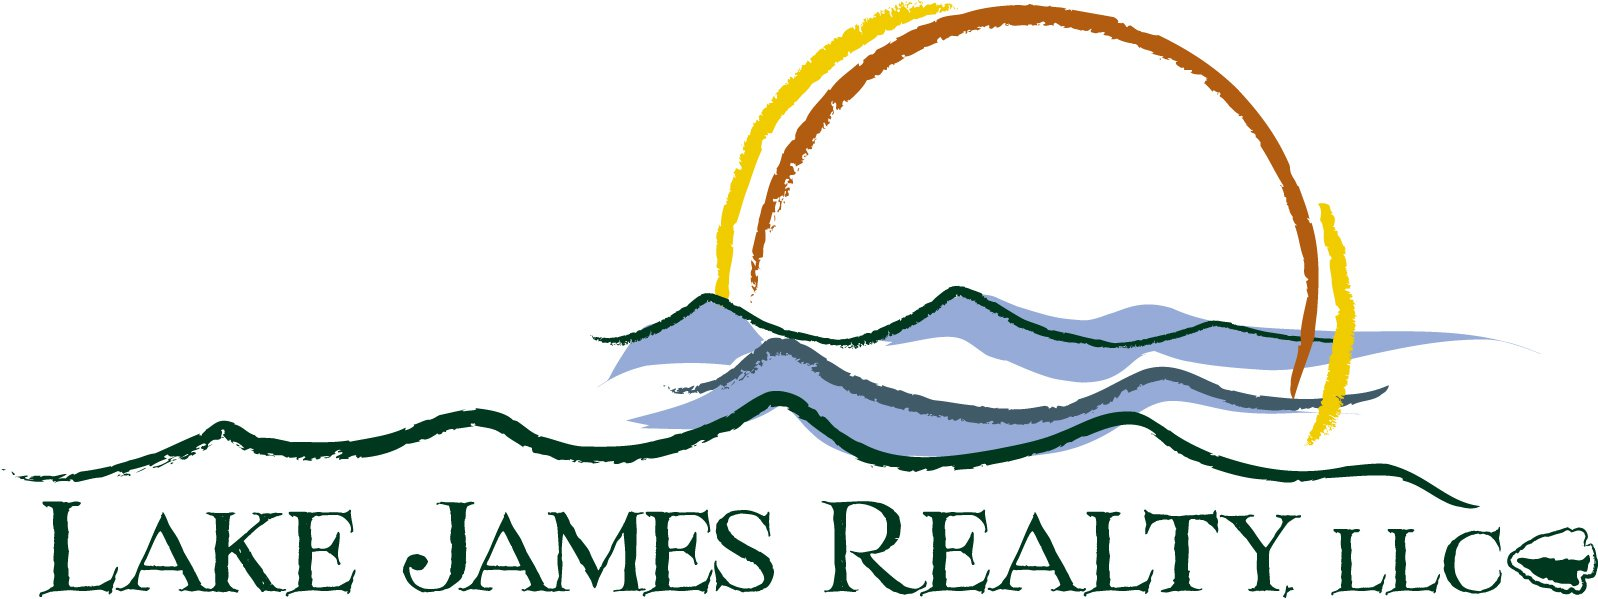 Lake James Realty logo